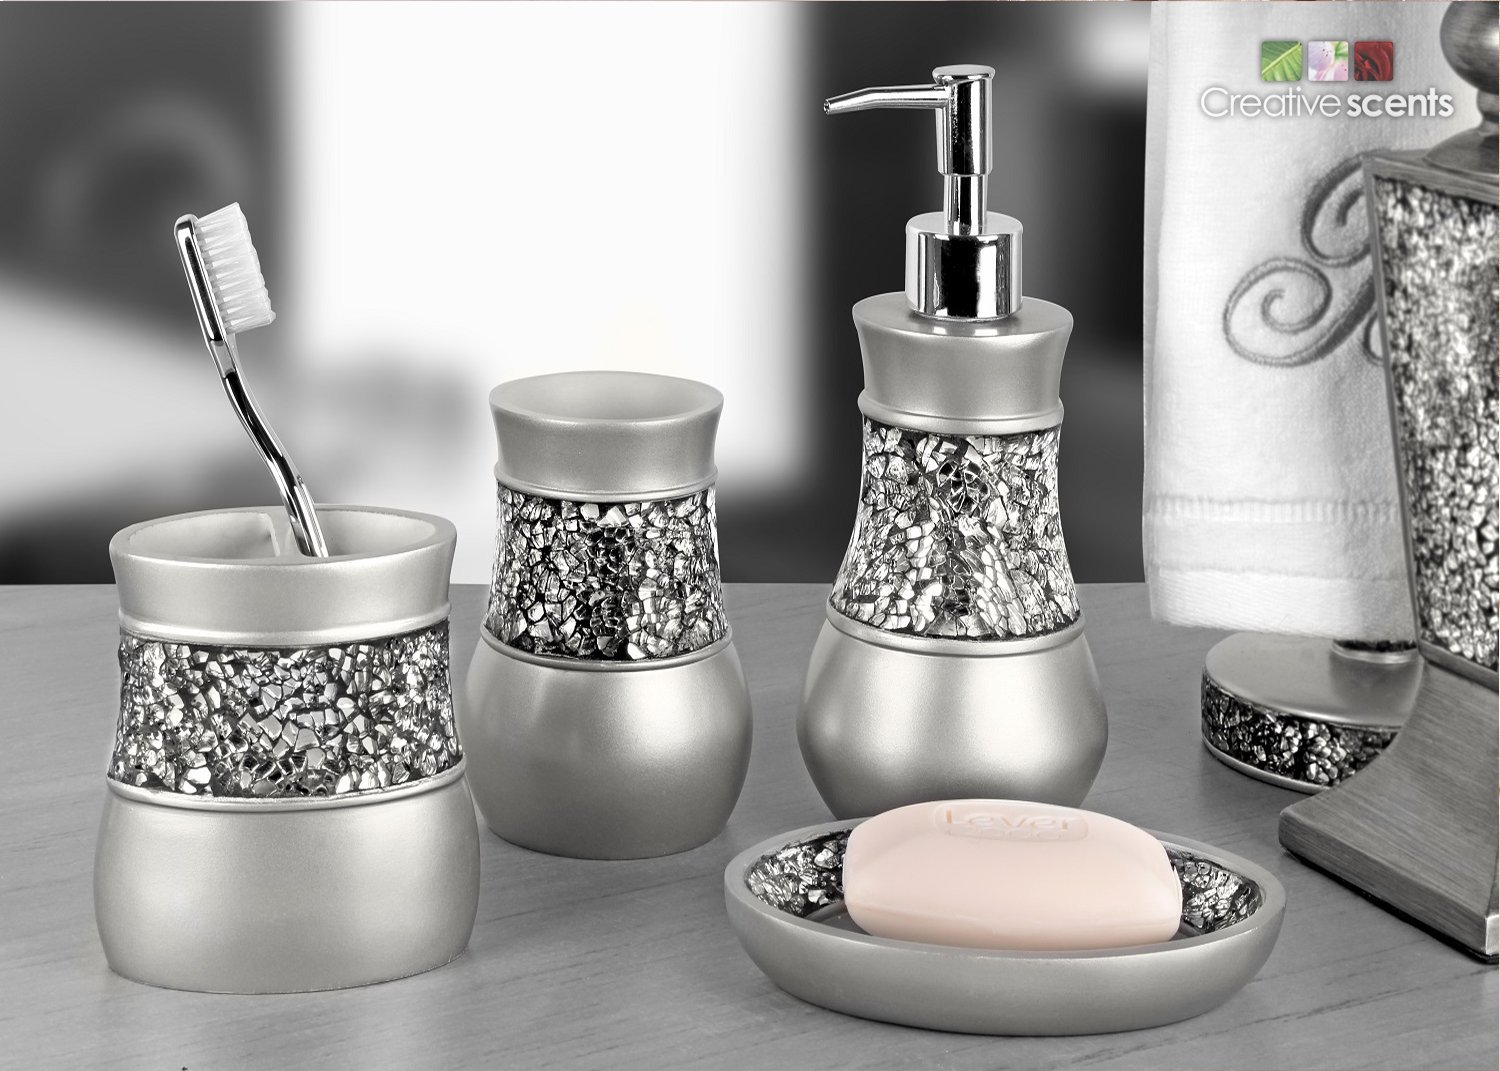 Amazon com  Creative Scents Brushed Nickel Bathroom Accessories Set  4  Piece Bath Ensemble  Bath Set Collection Features Soap Dispenser Pump. Amazon com  Creative Scents Brushed Nickel Bathroom Accessories